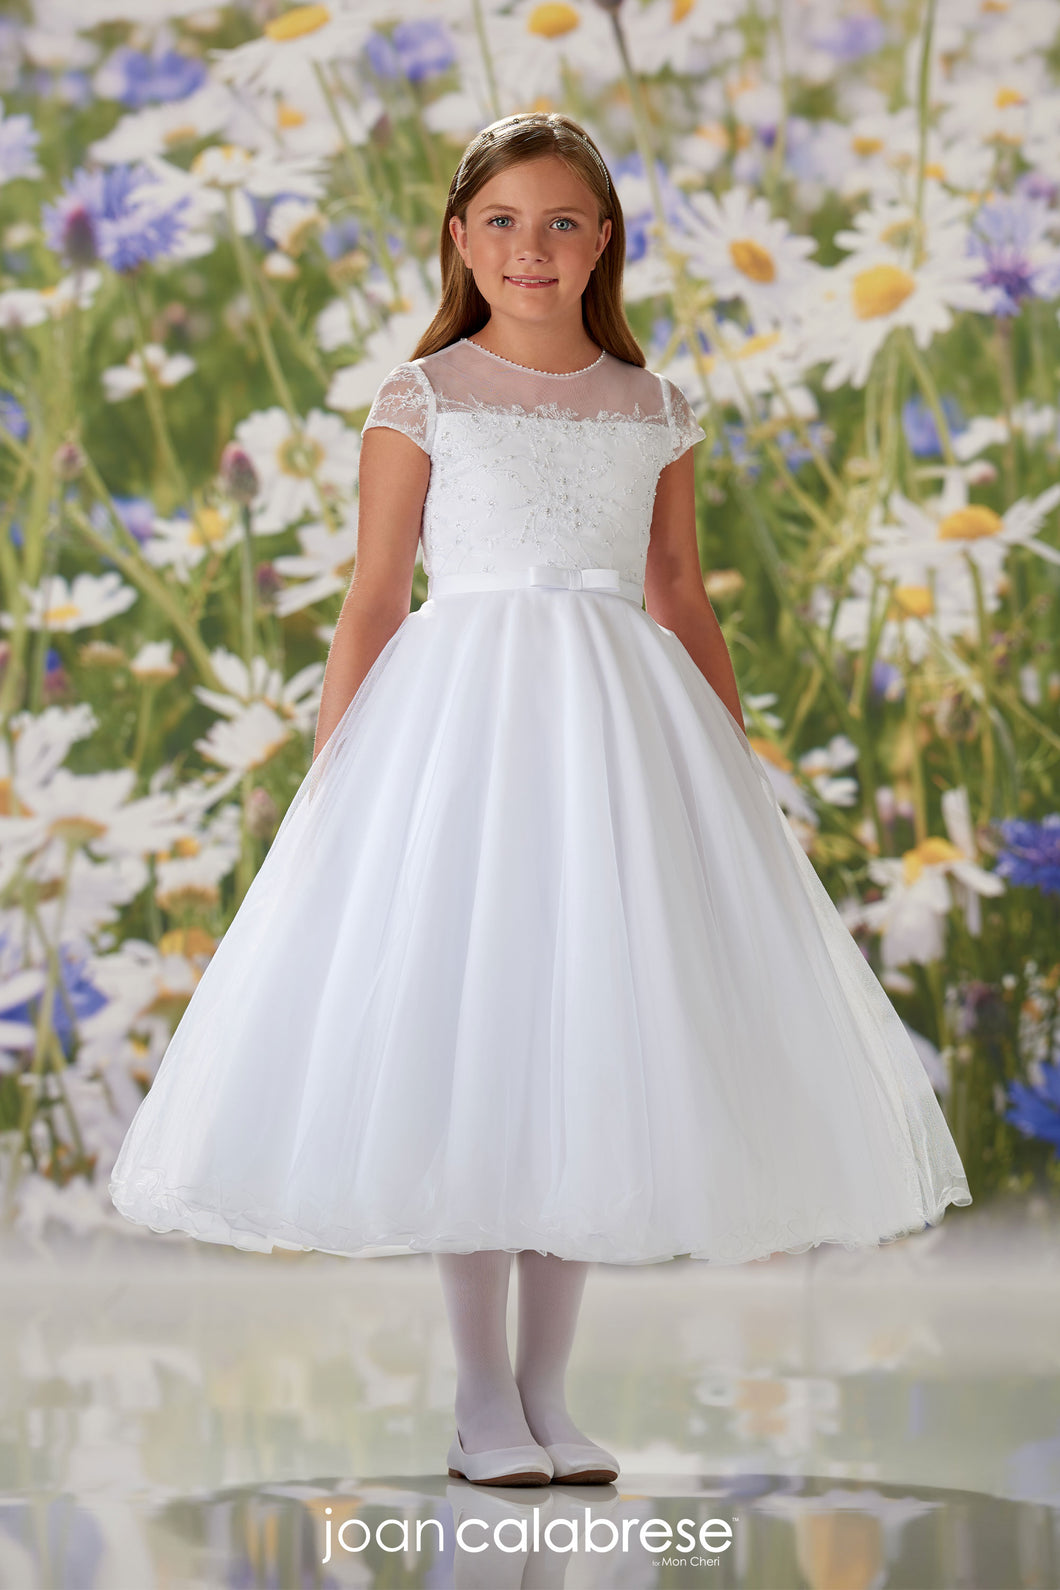 120335 Joan Calabrese Communion/Flower Girl Dress SOLD OUT